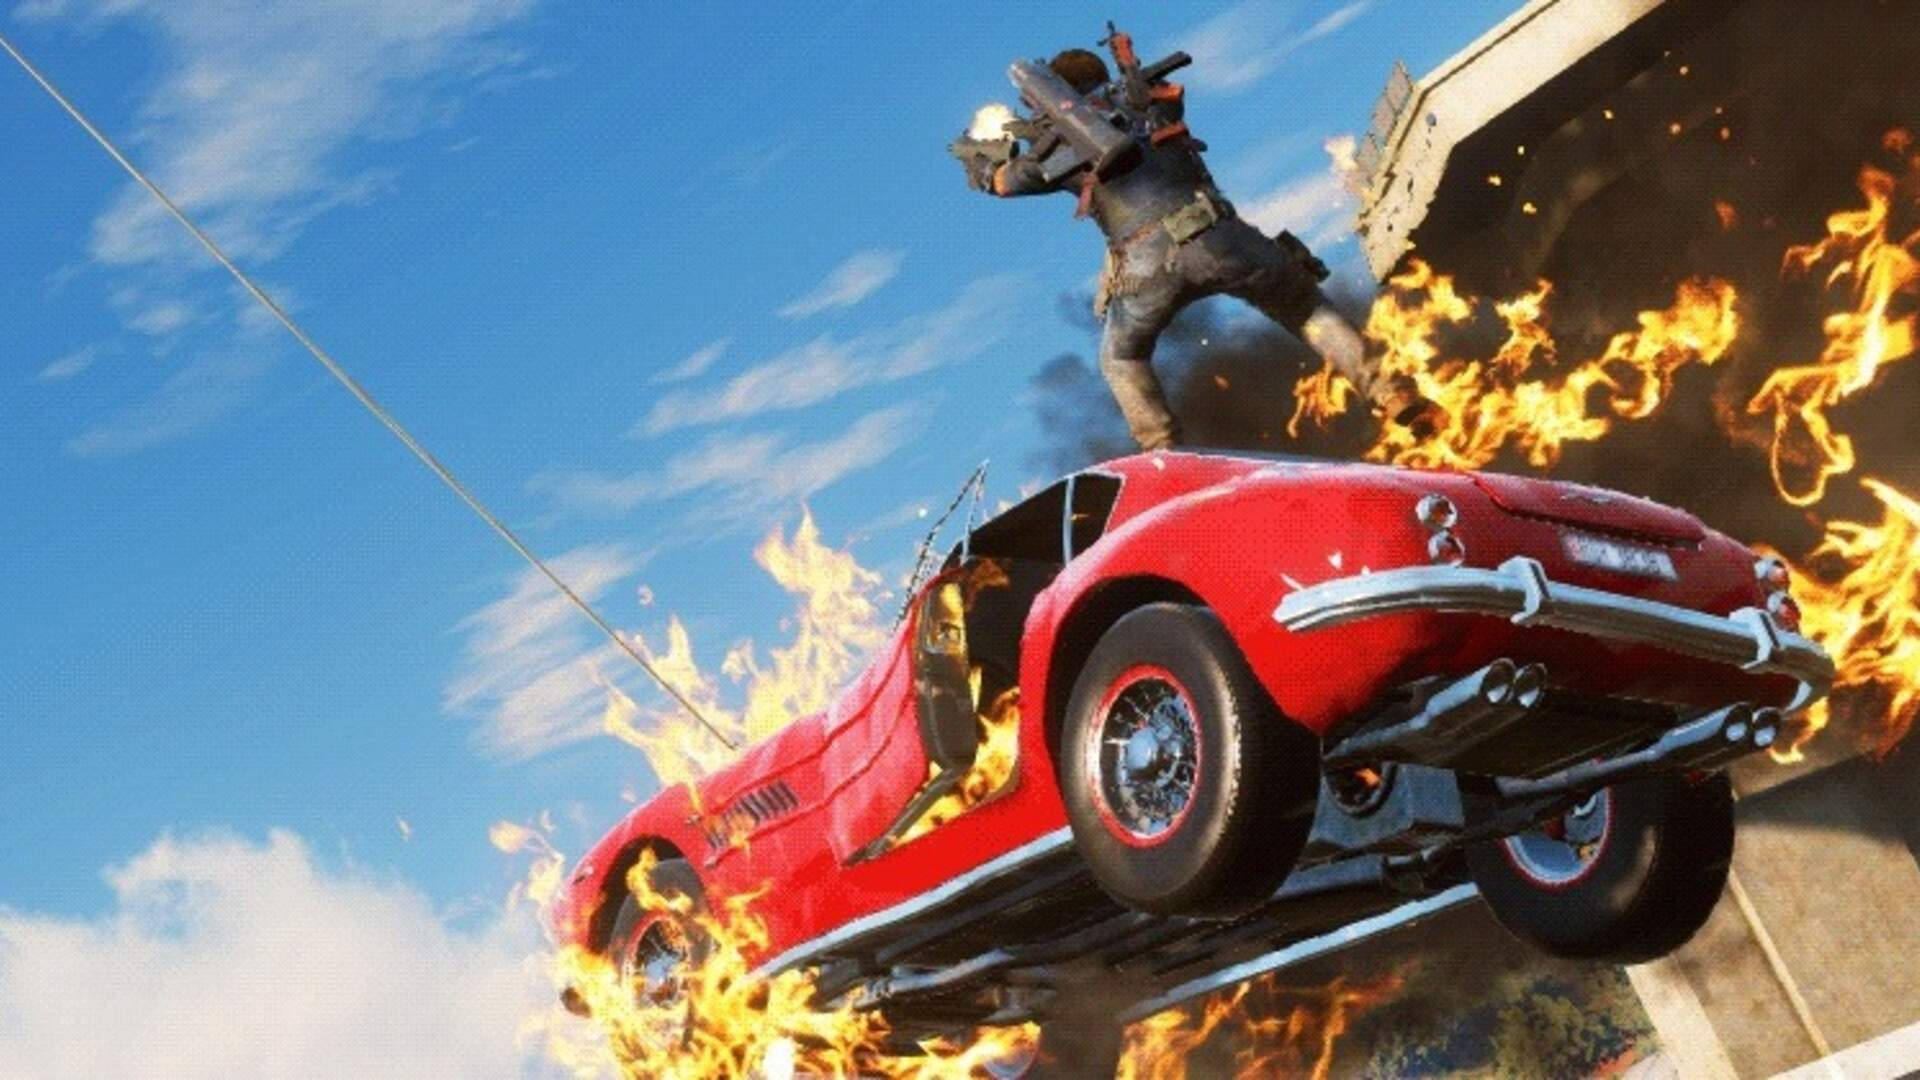 Just Cause 3 Story Mission Guide: Of Cows and Wine, Save All the Wine Barrels